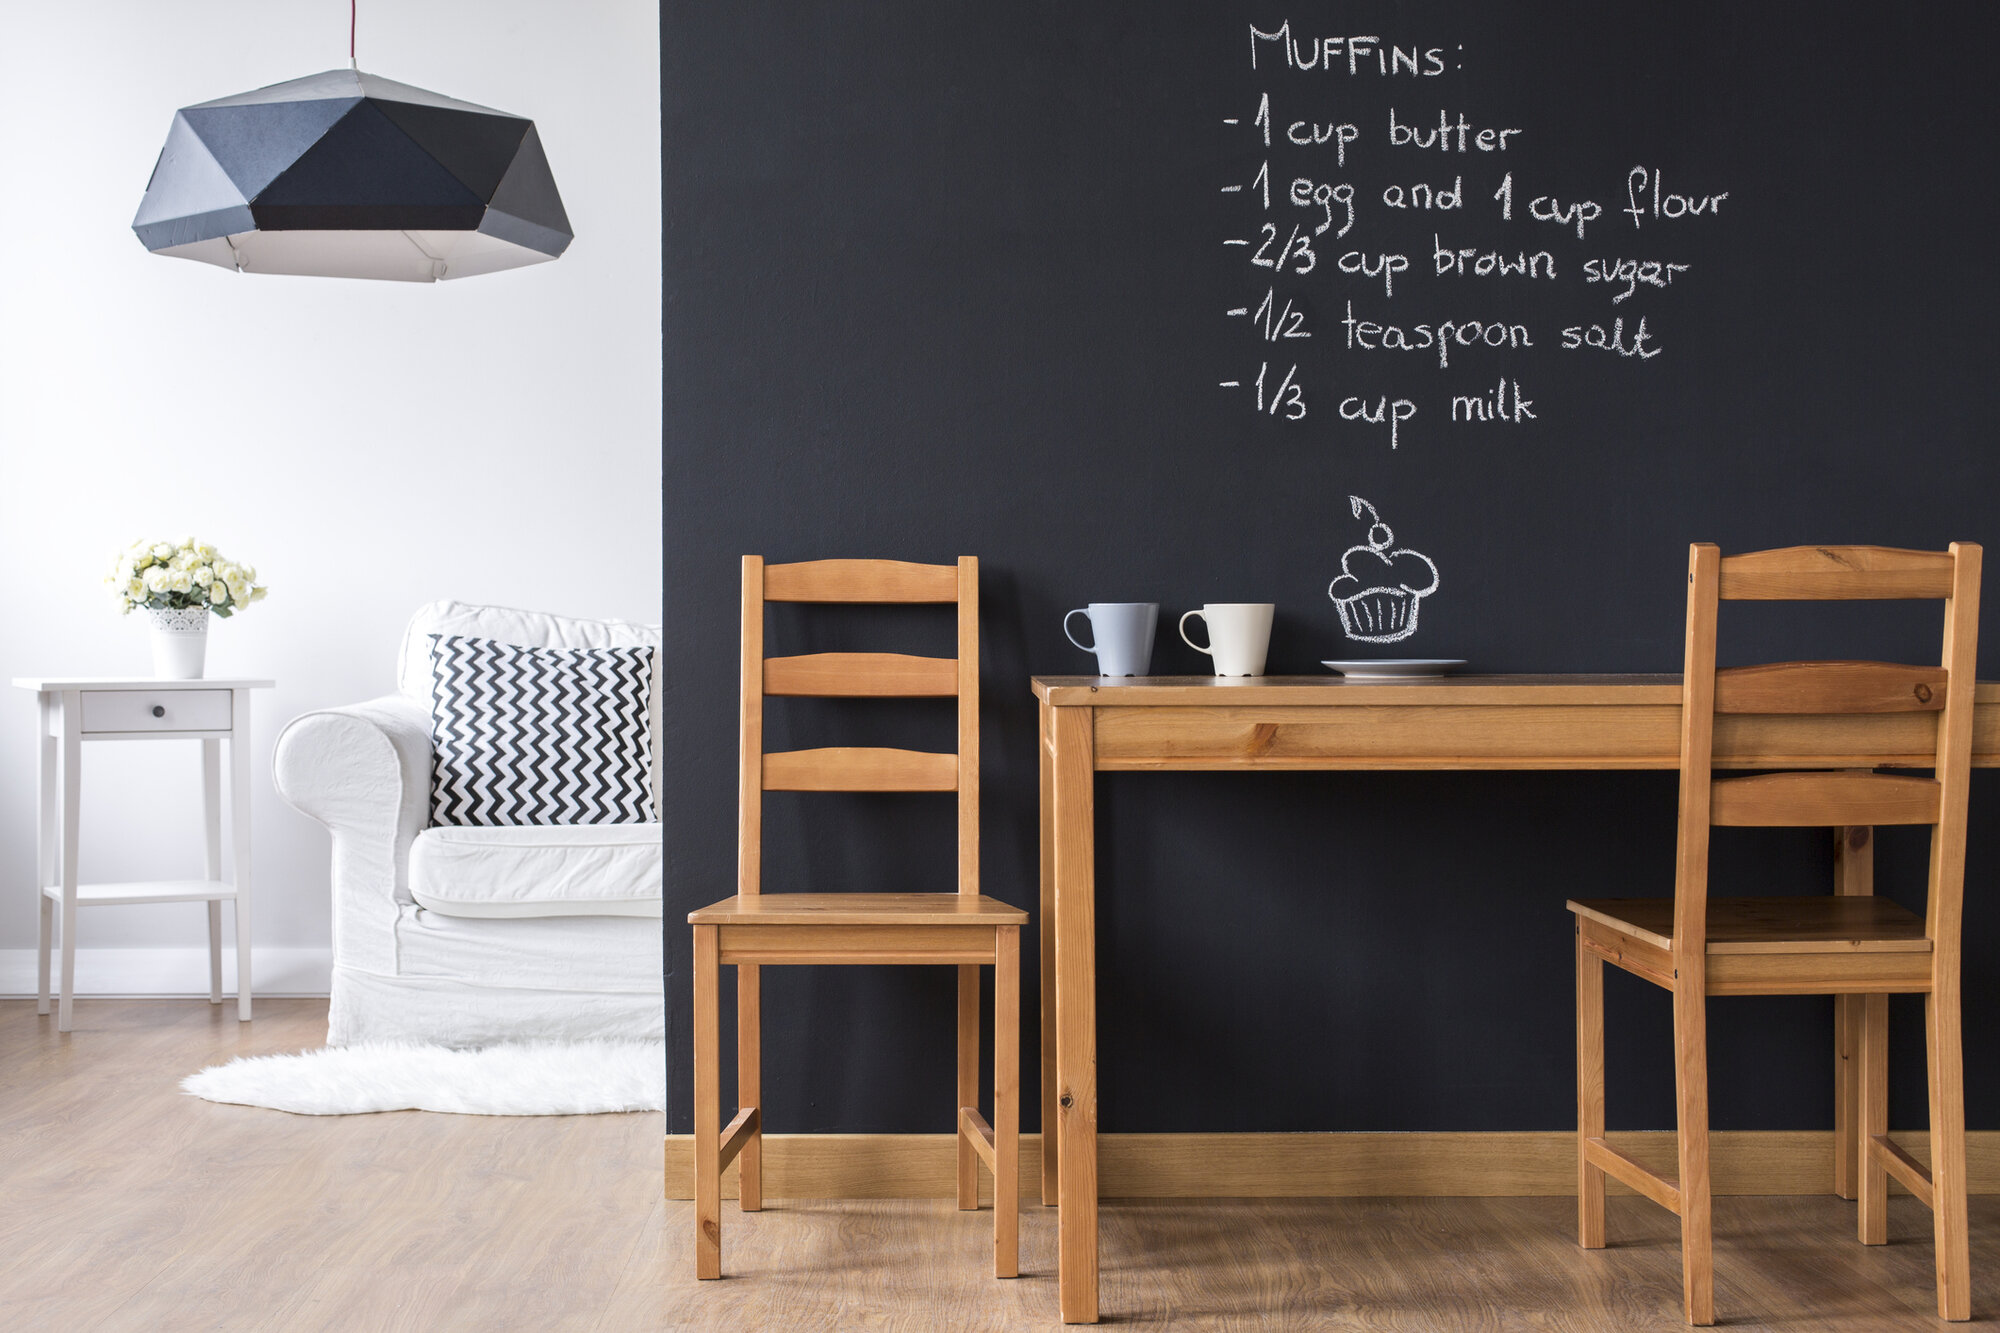 https://print.arcdesign.sk/images/products_gallery_images/istock-katarzynabialasiewicz-small-dining-room-with-blackboard-wall-jpg-9375_11252306202011.jpeg